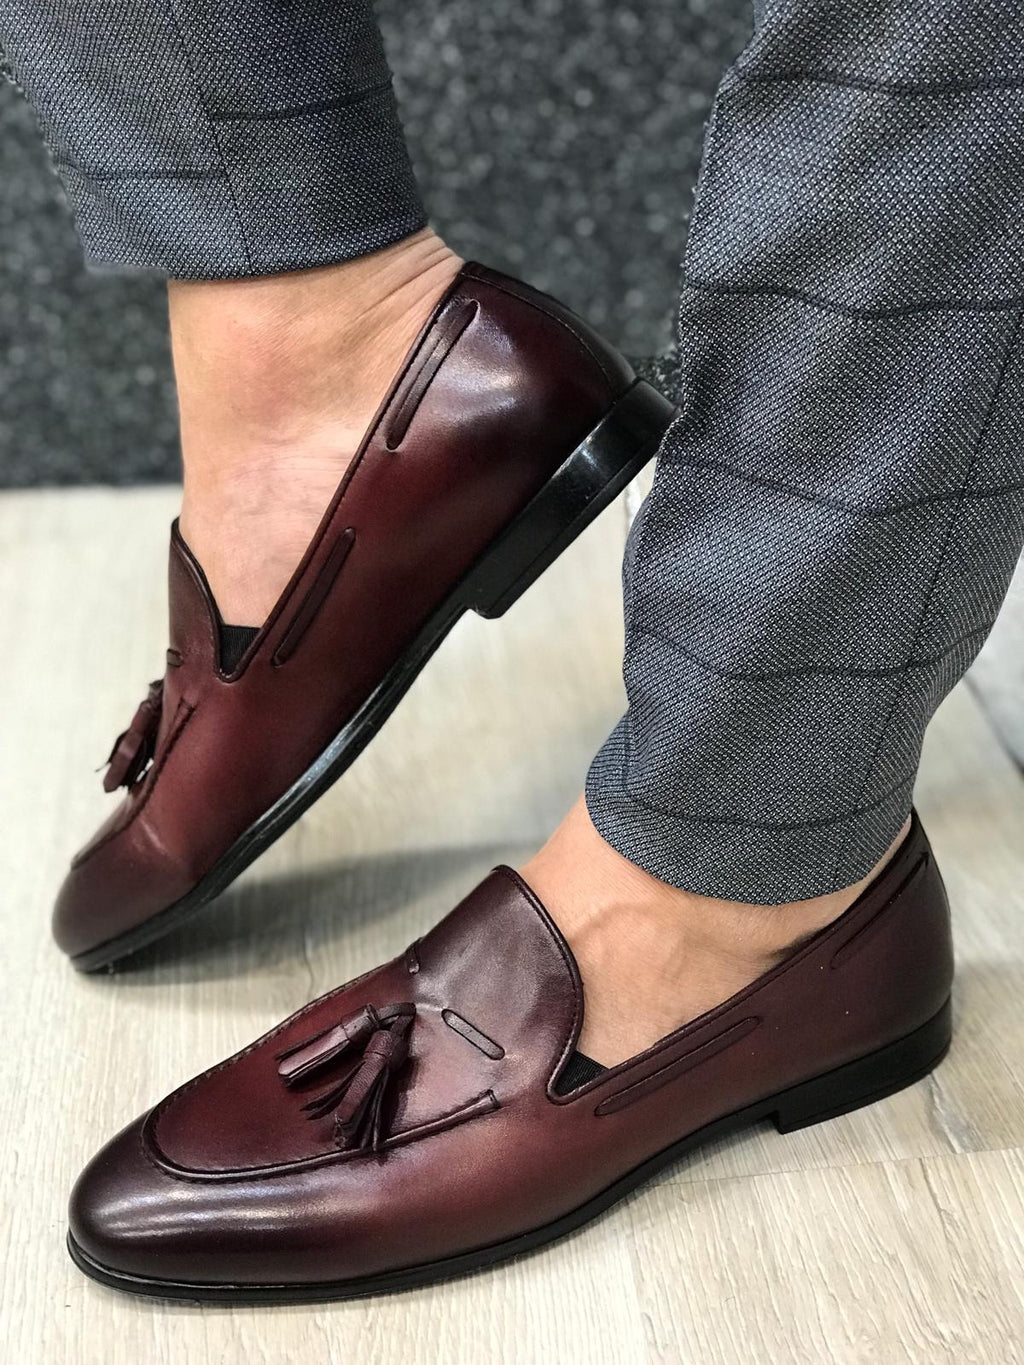 Tassel Leather Burgundy Loafers